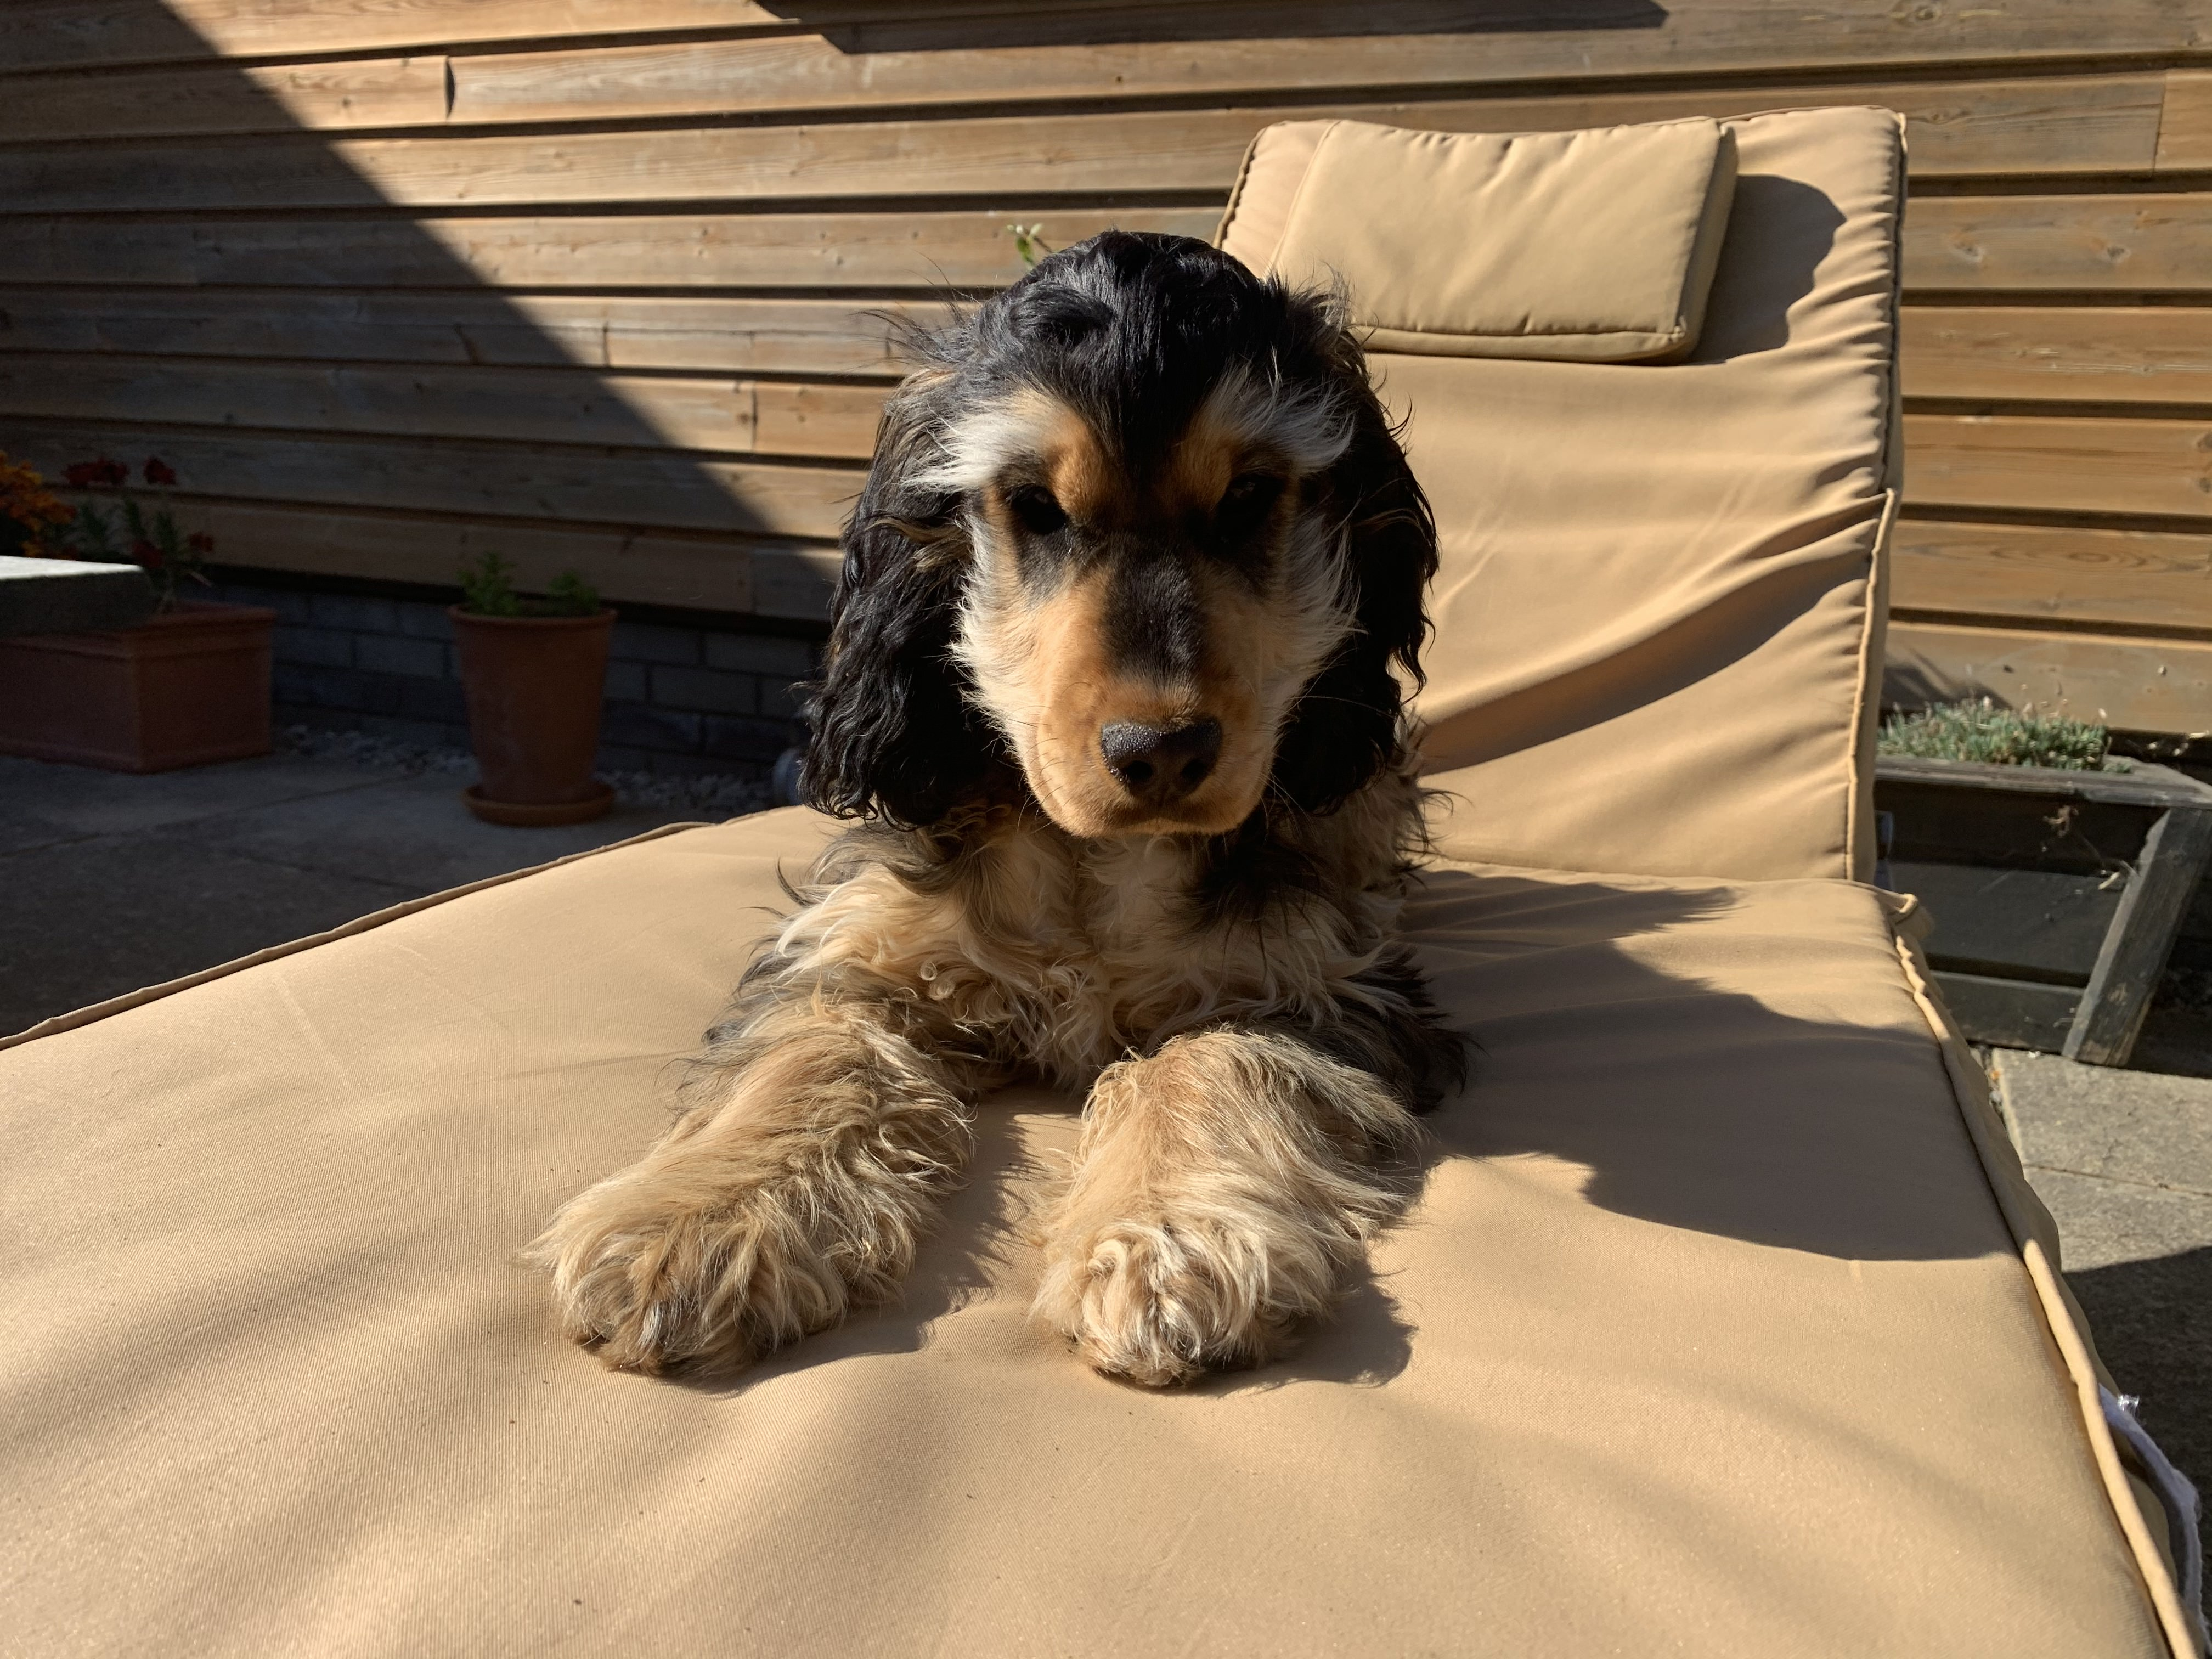 Margo the cocker spaniel pup soaks up the sun on a lounger at Gwelmor dog-friendly holiday cottage in Widemouth Bay